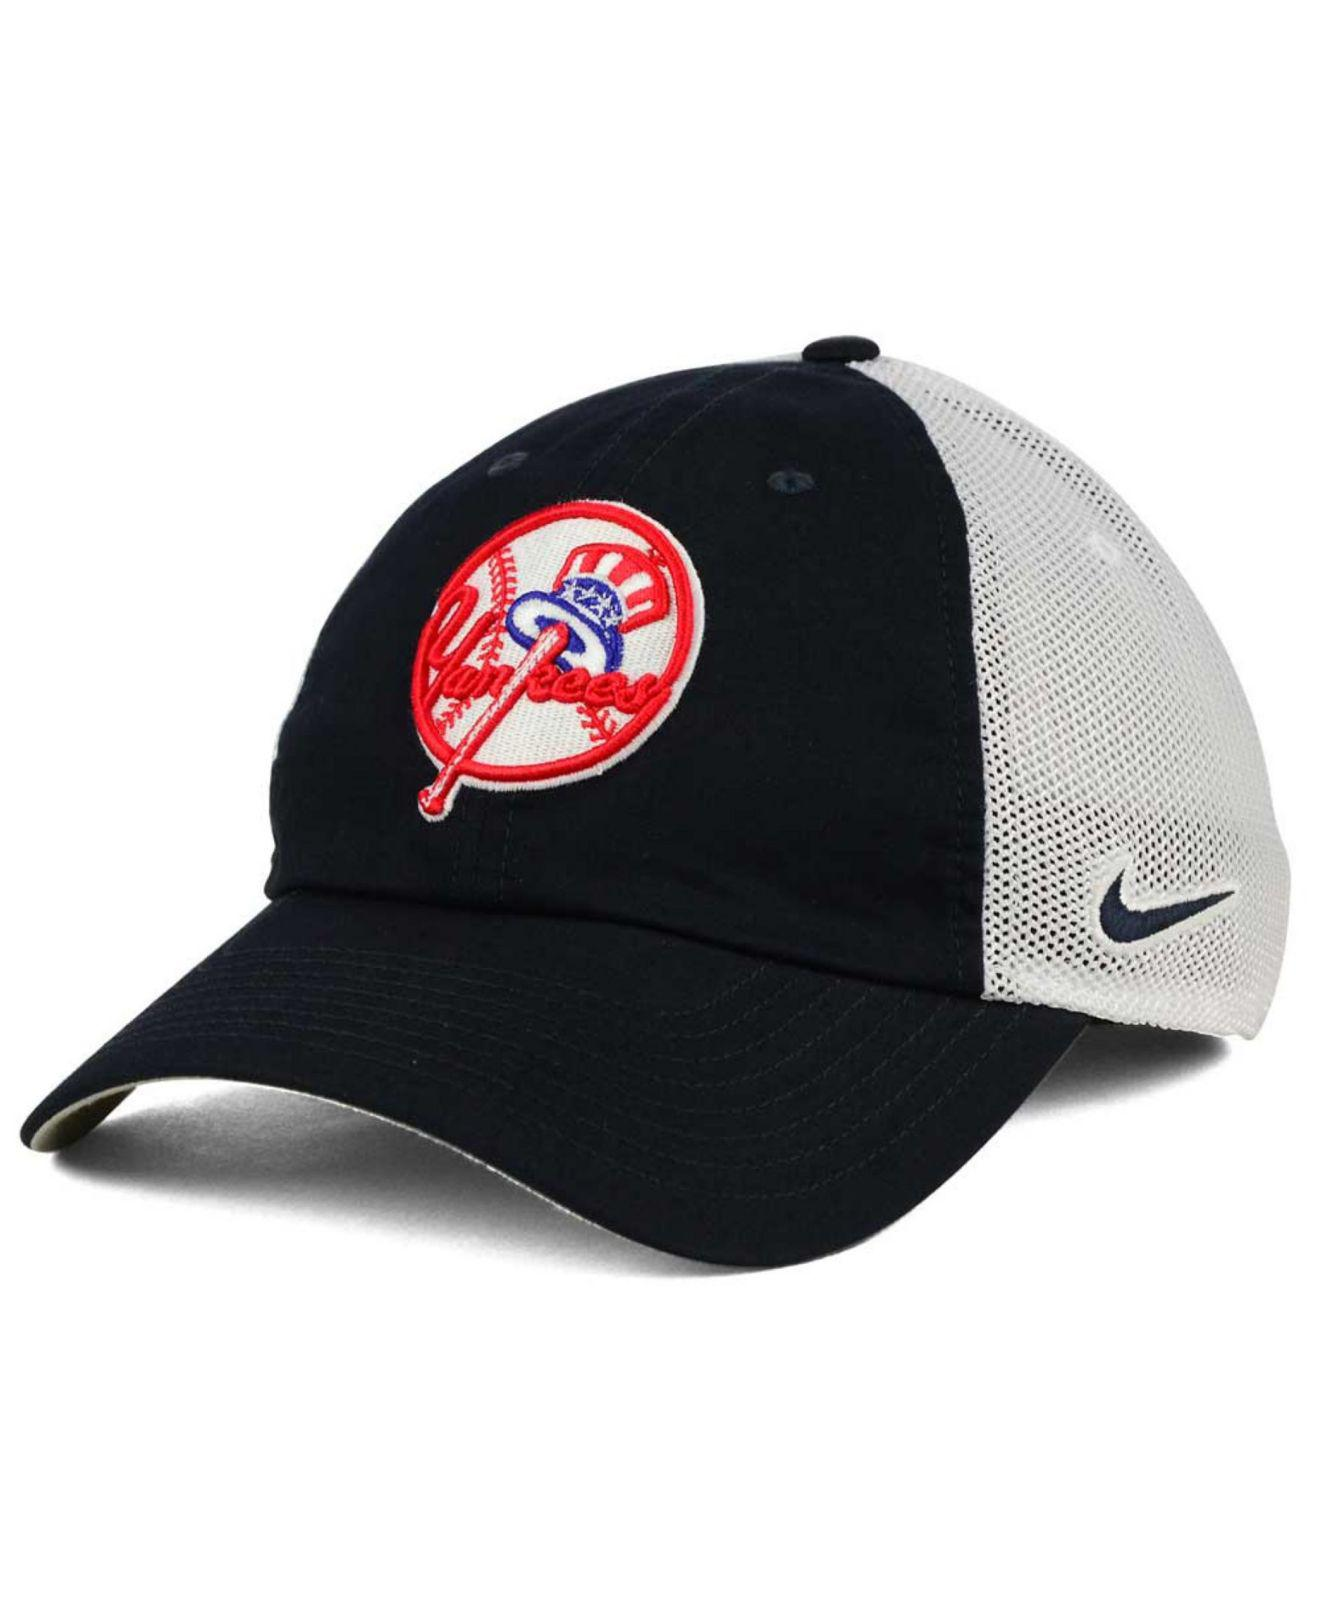 Lyst - Nike New York Yankees Dri-fit Mesh Swoosh Adjustable Cap in ... 0af4e31ad632